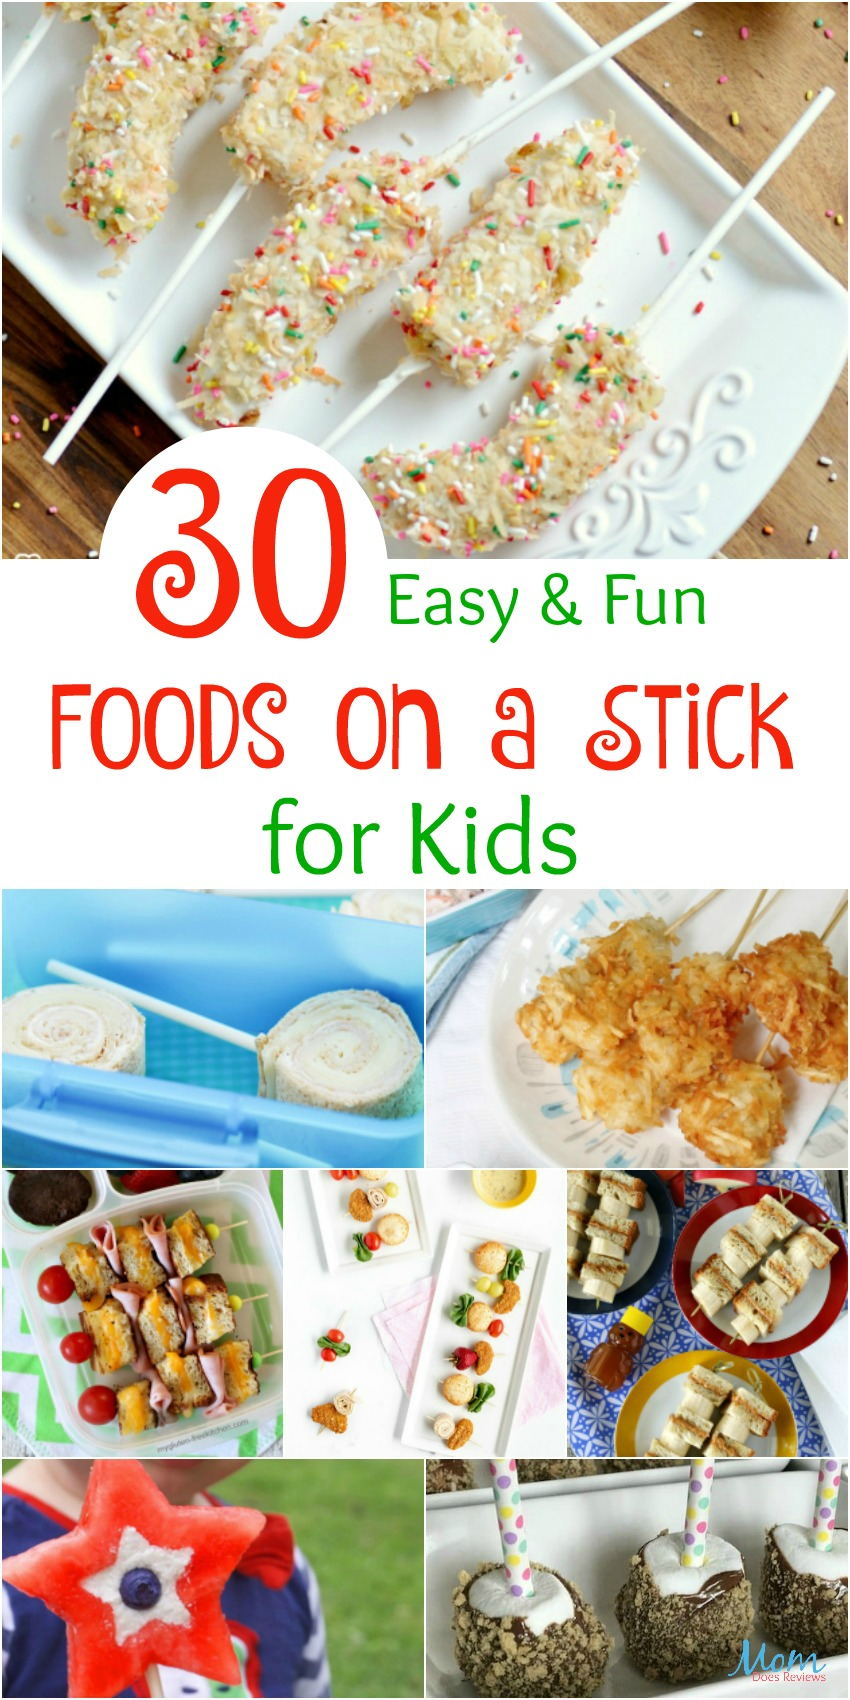 30 Fun & Yummy Food on a Stick Ideas for Kids #funfood #kidapproved #food #Foodie #snacks #getinmybelly